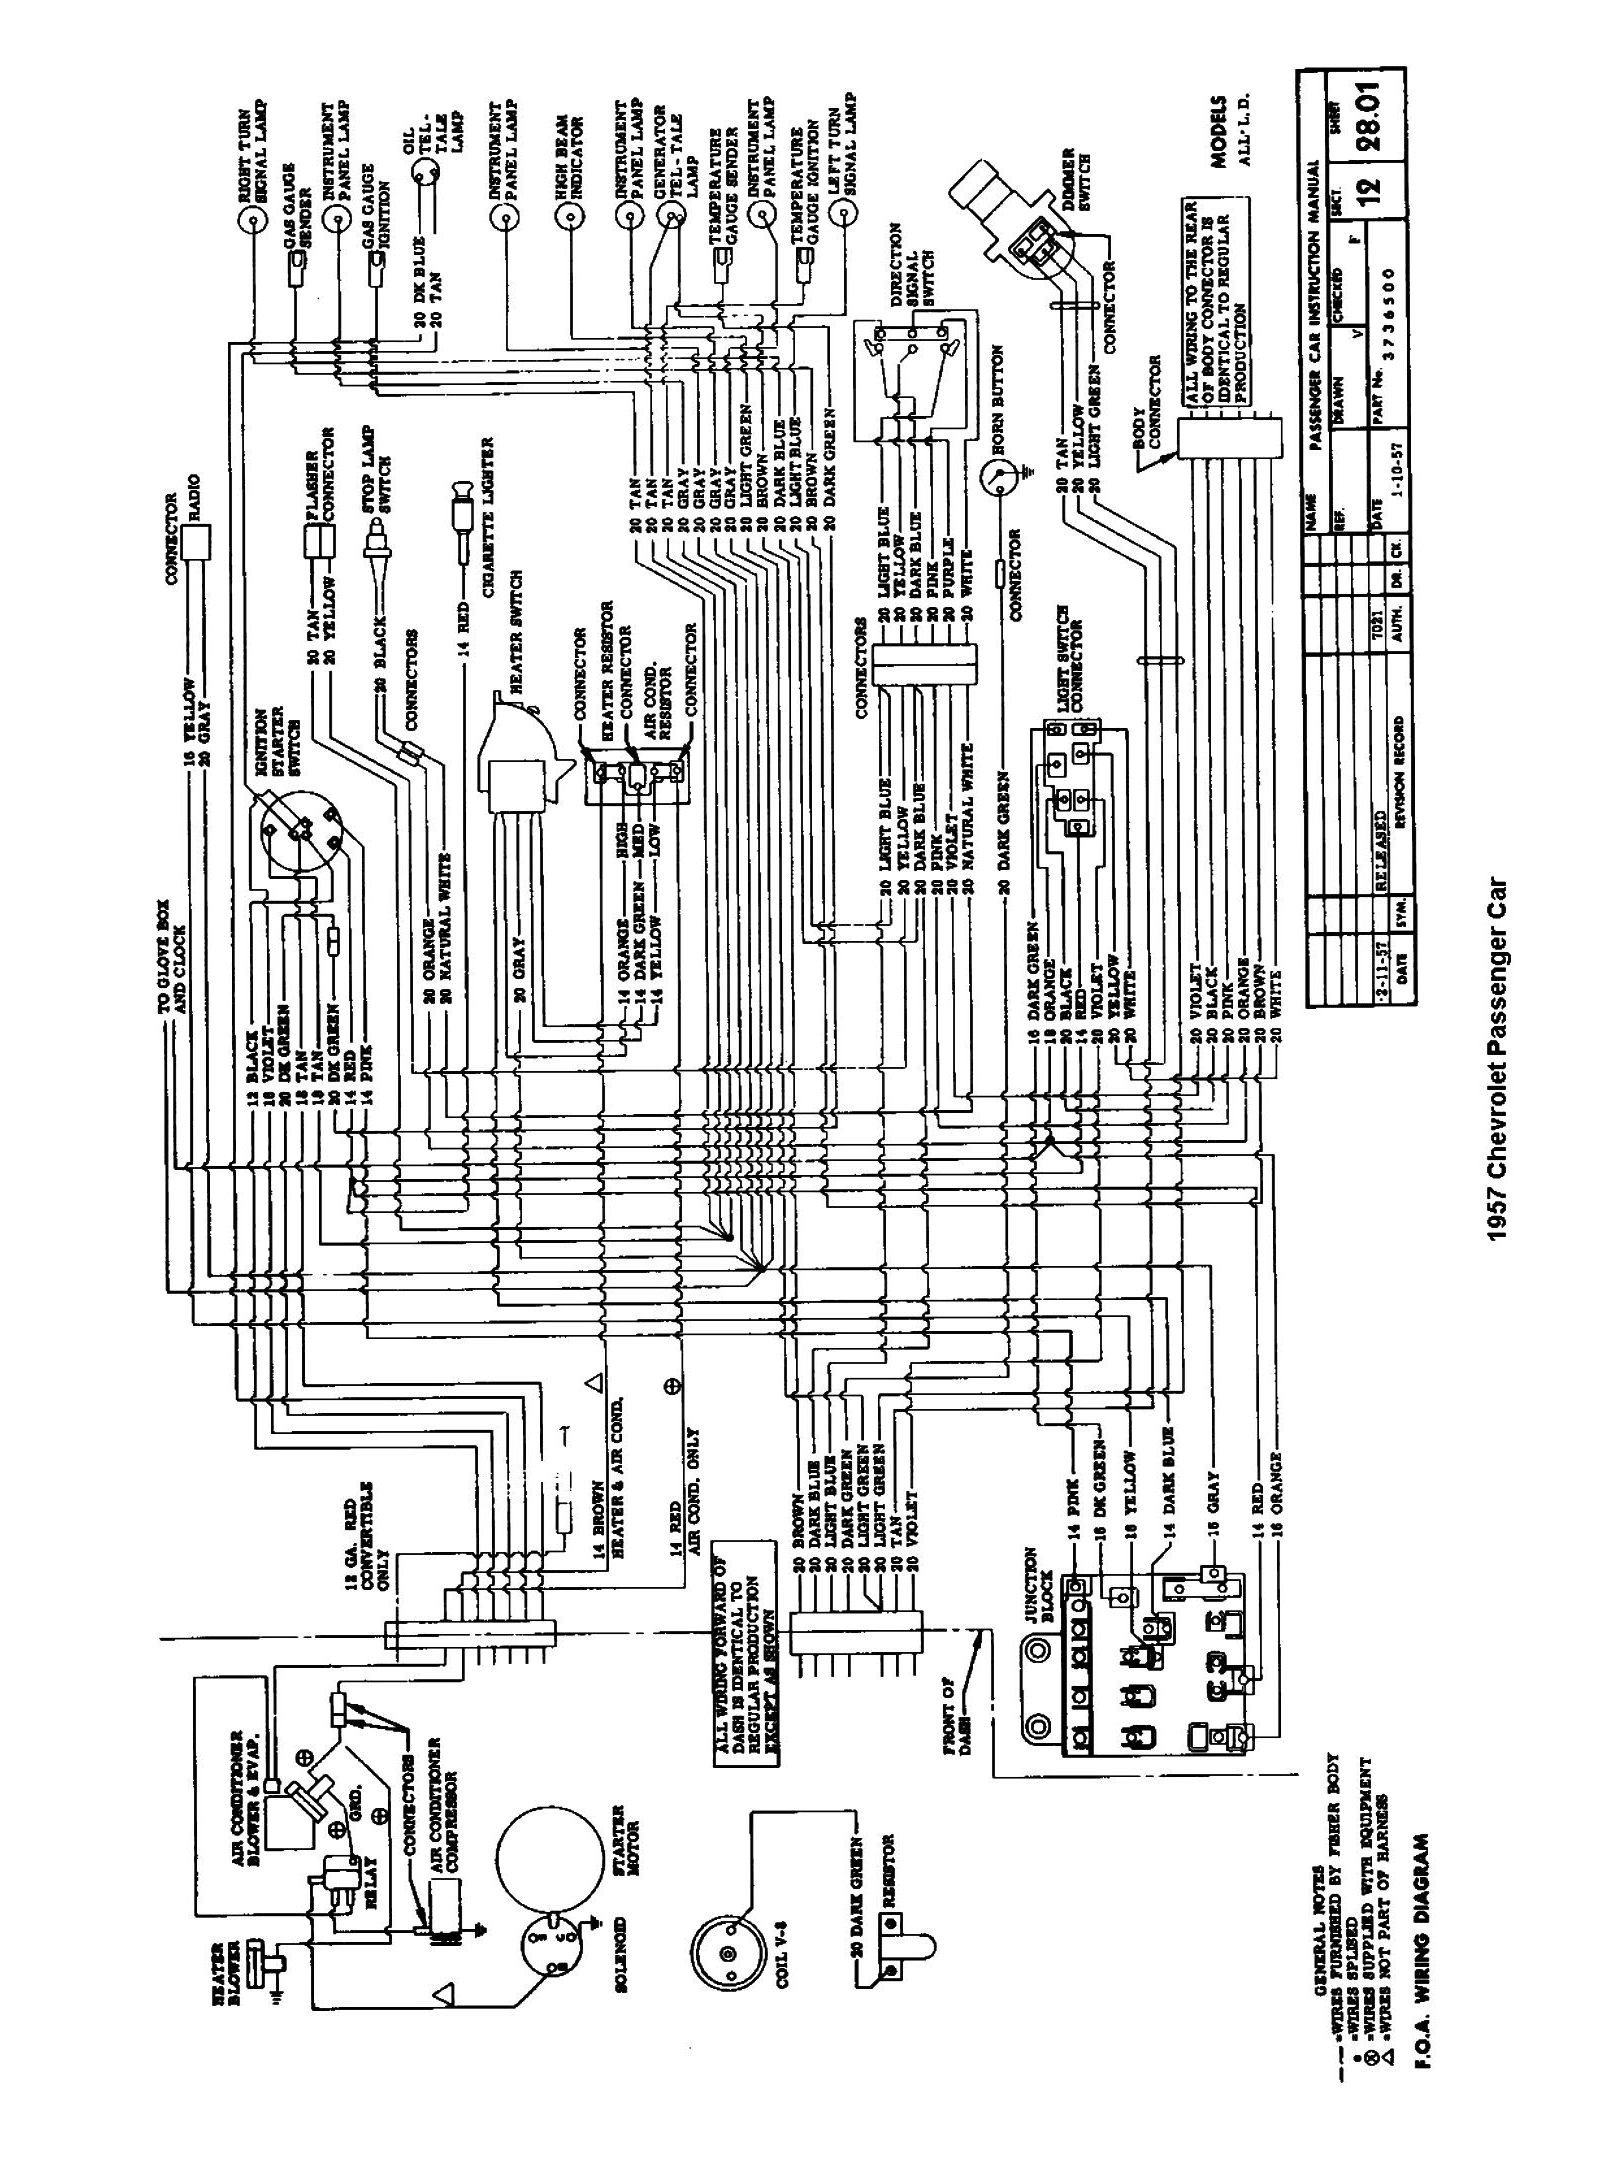 hight resolution of 57 chevy pickup wiring excellent electrical wiring diagram house 4 chevy truck wiring 1964 chevy pickup